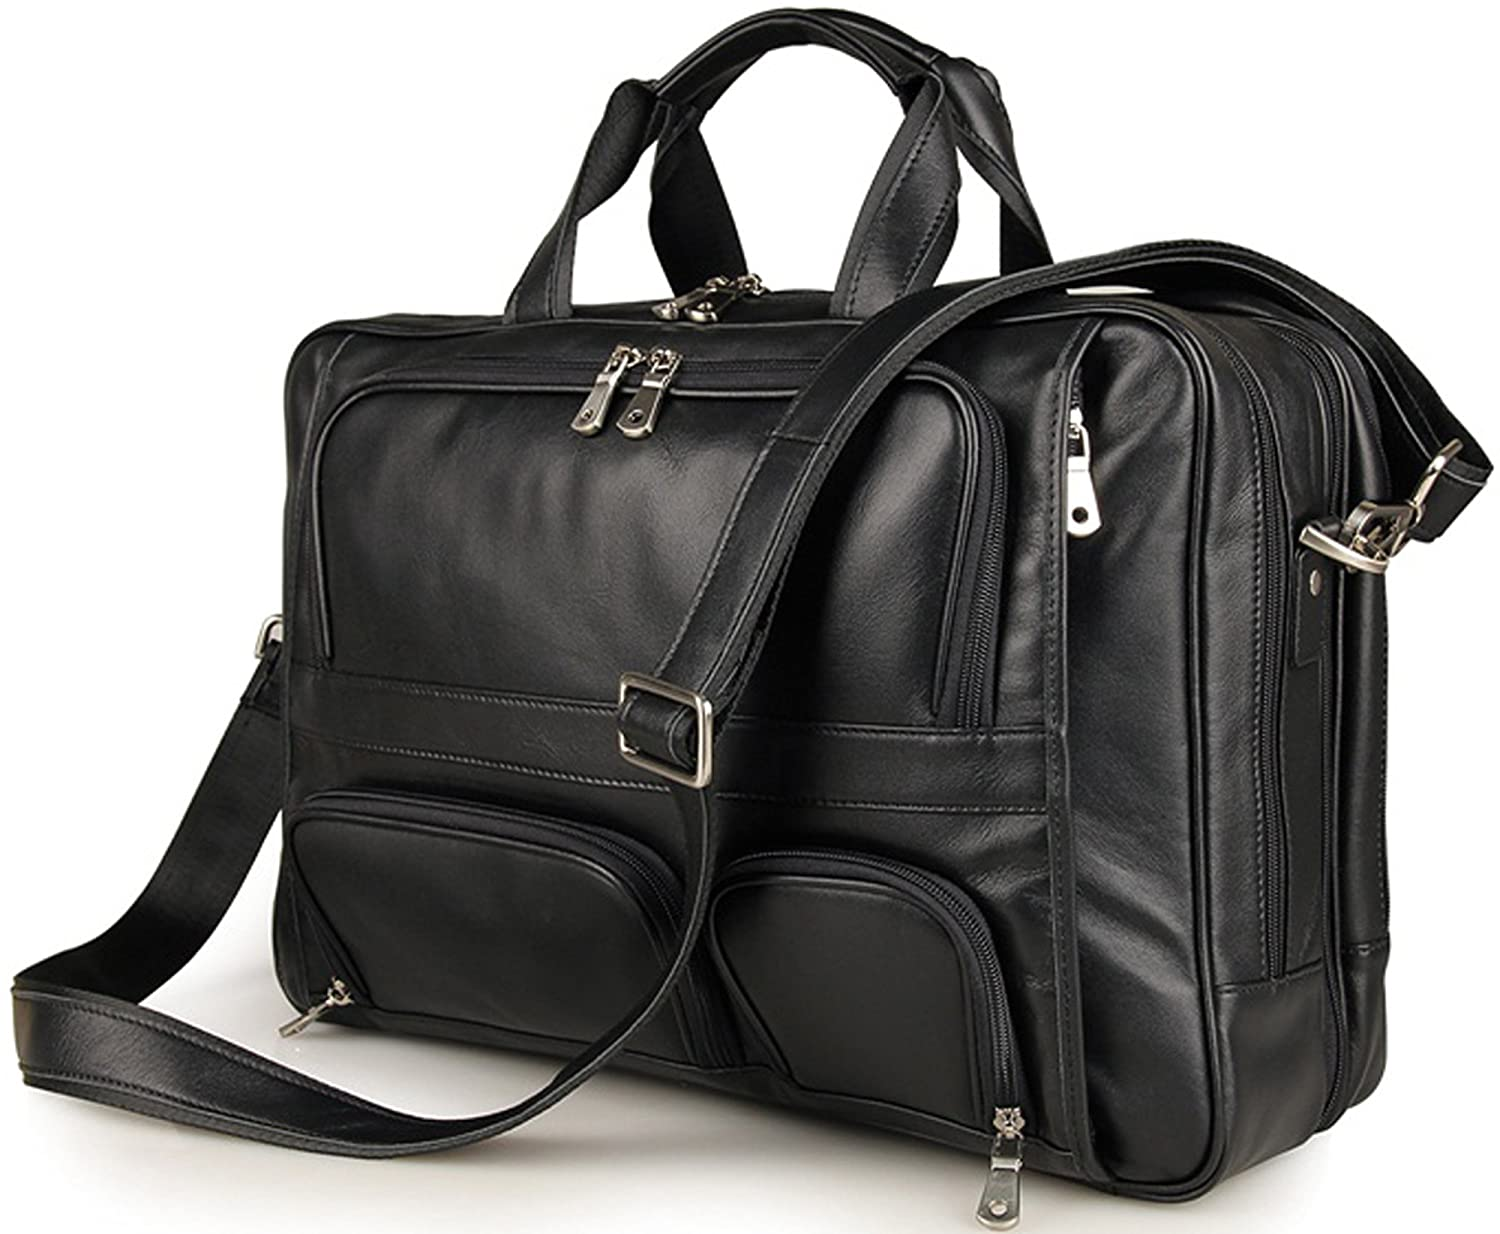 Iswee Genuine Leather Laptop Messenger Bag Business Briefcase Travel Duffel Luggage Bag Large Size-Fit 17 Laptop, Black